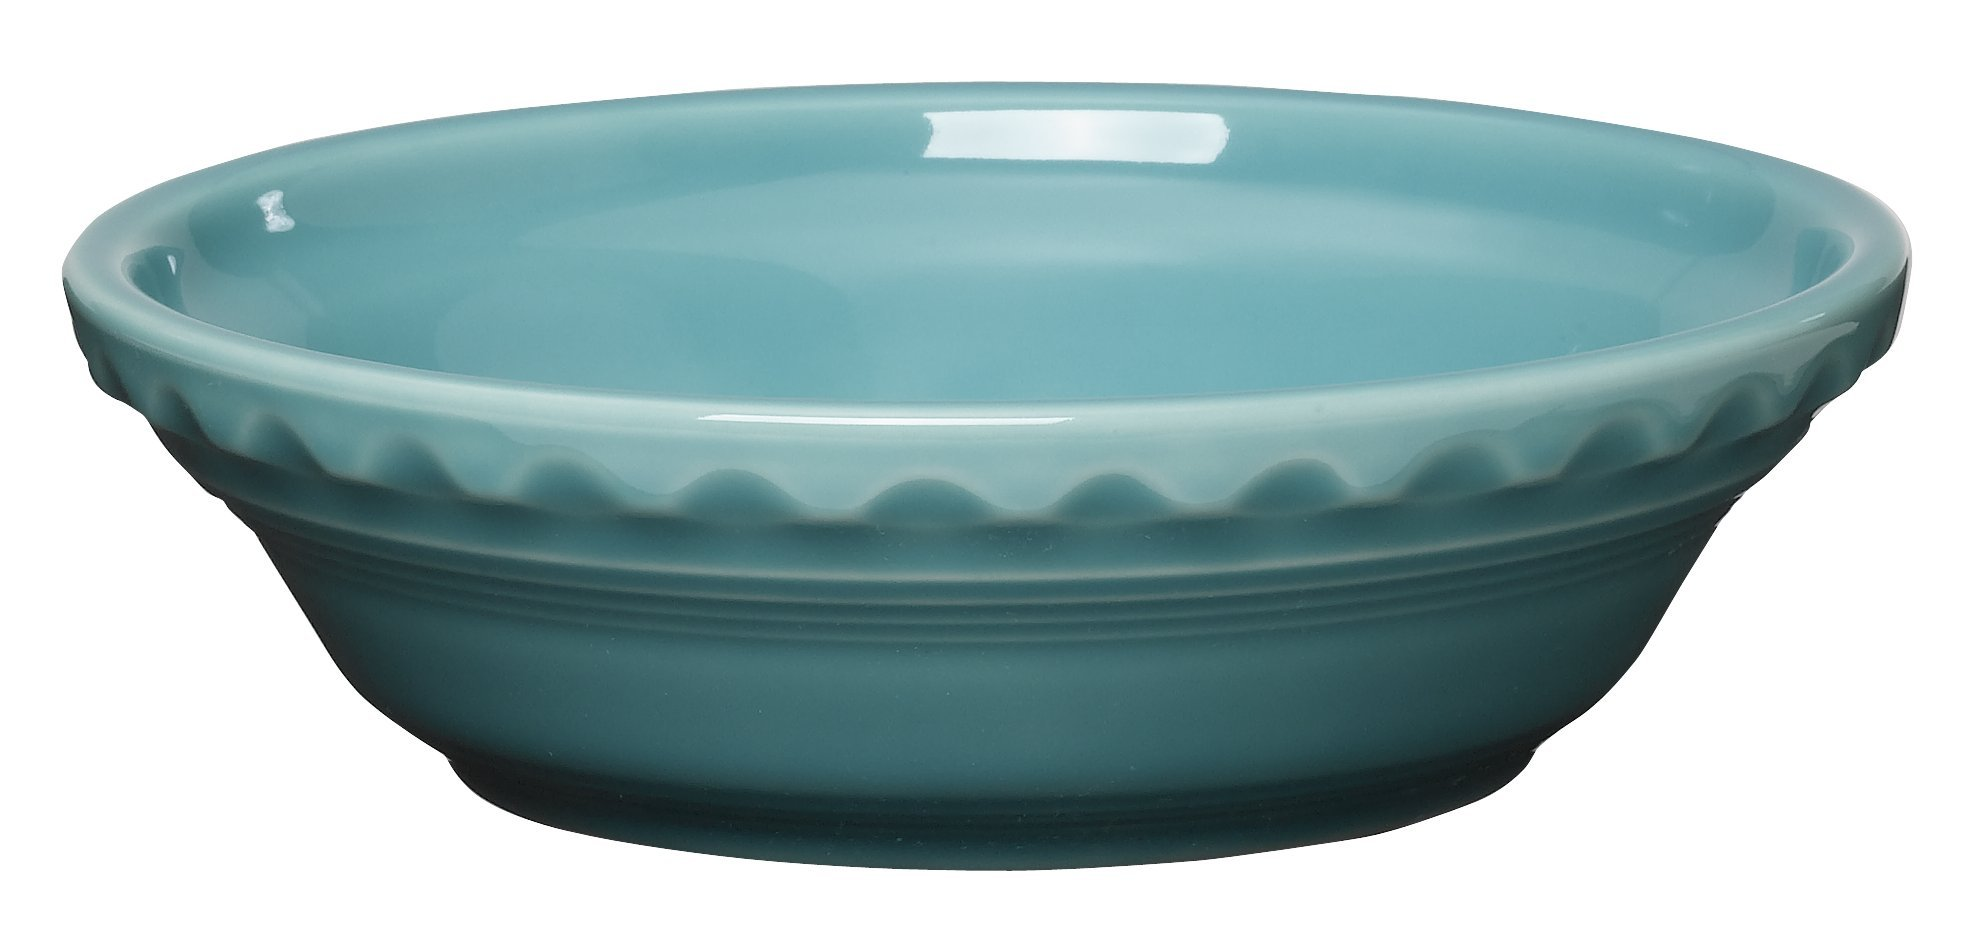 Fiesta 6-3/8-Inch Small Pie Plate, Turquoise